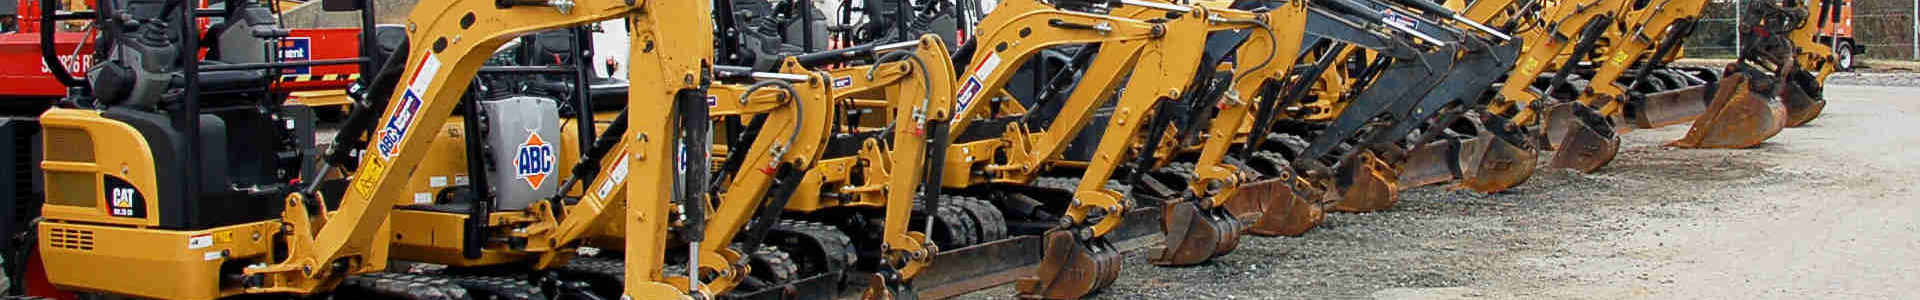 Construction Tools & Equipment Rentals in the Baltimore Metro Area